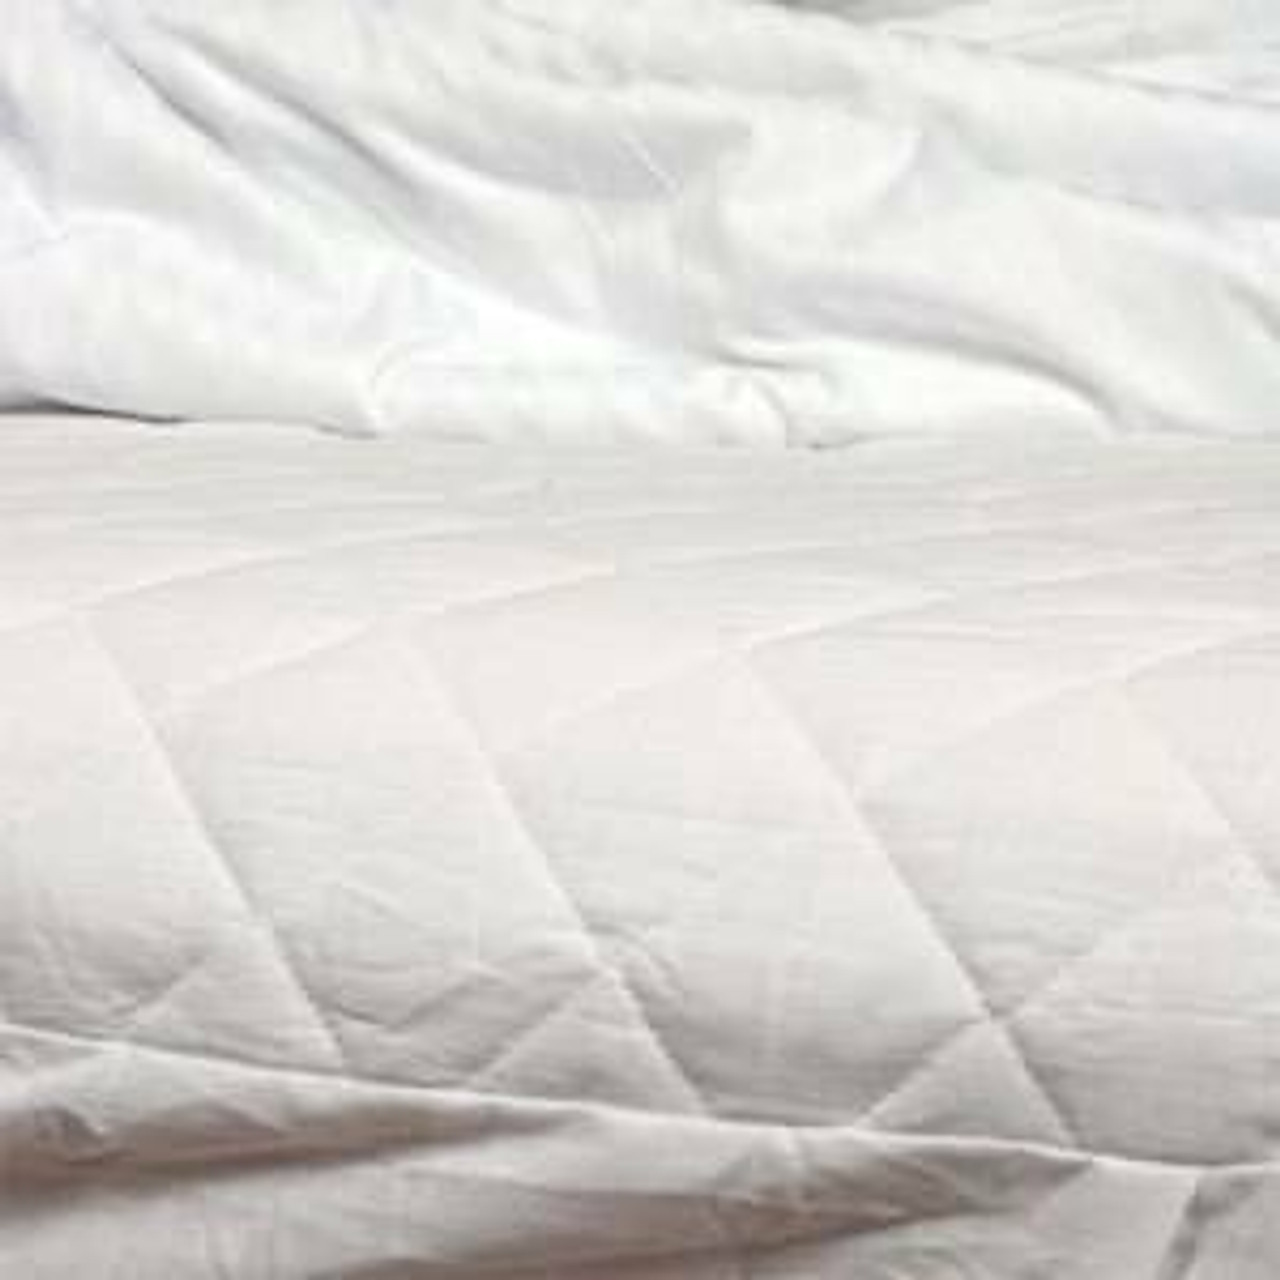 Ganesh Mills or Oxford Super Blend Ganesh Mills or Quilted Fitted Mattress Pad or pack of 12